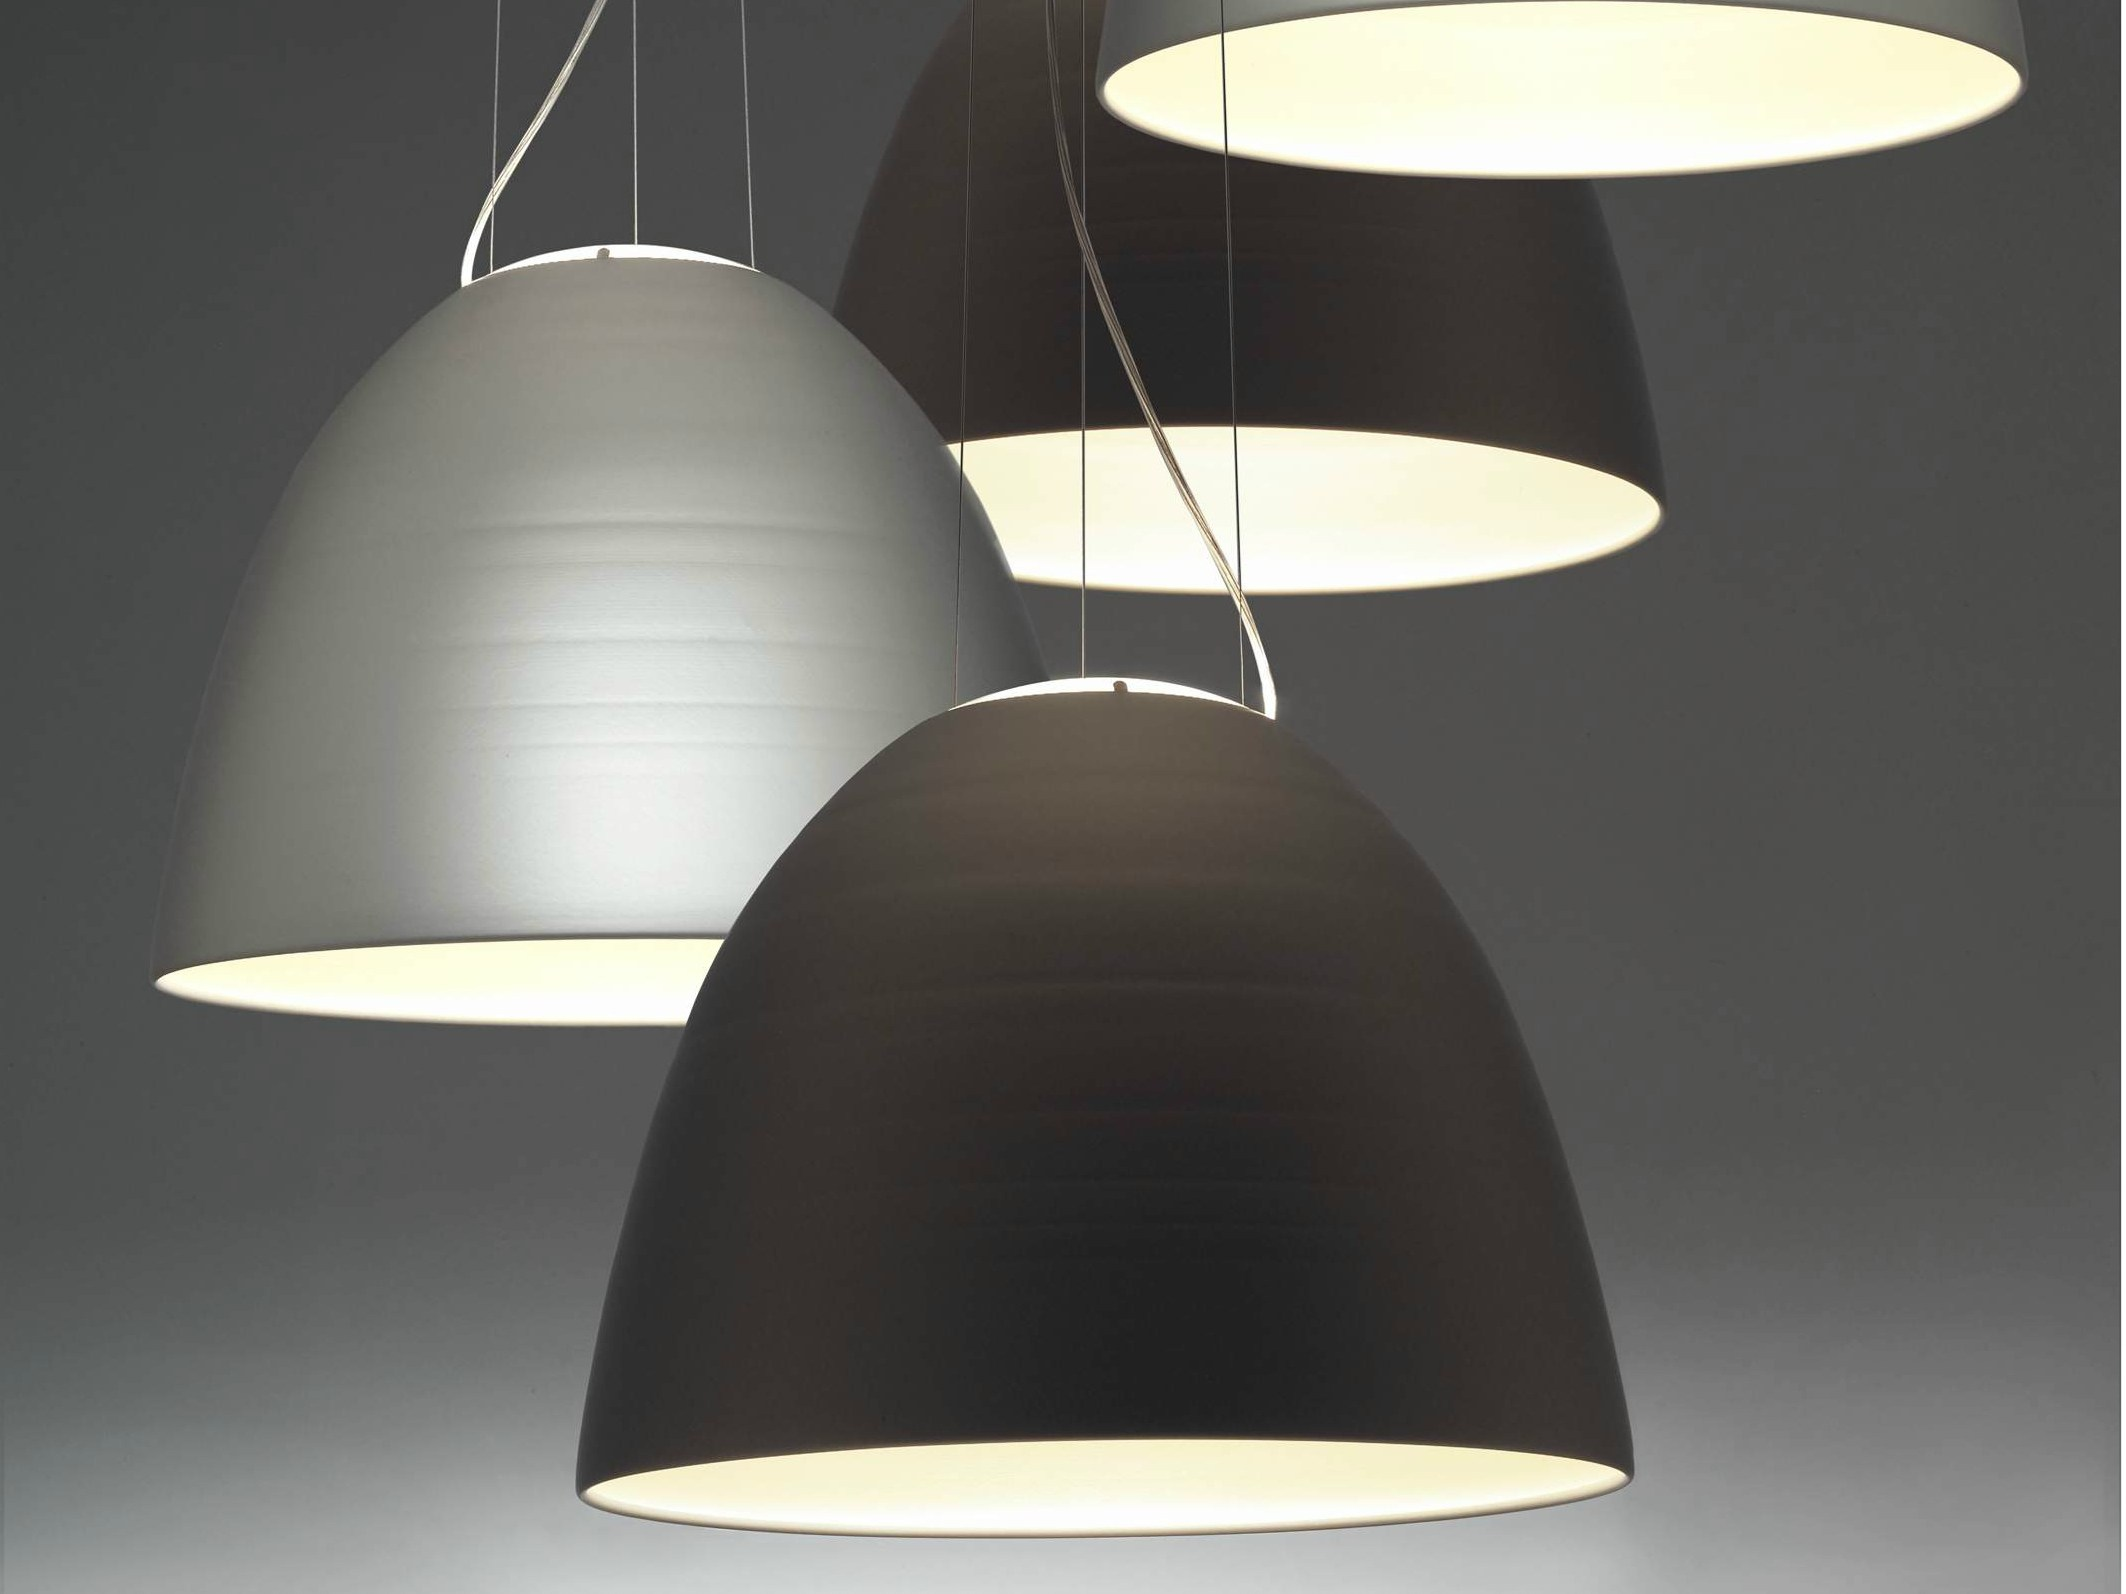 Lampen Artemide Nur Pendant Lamp Nur Collection By Artemide Design Ernesto